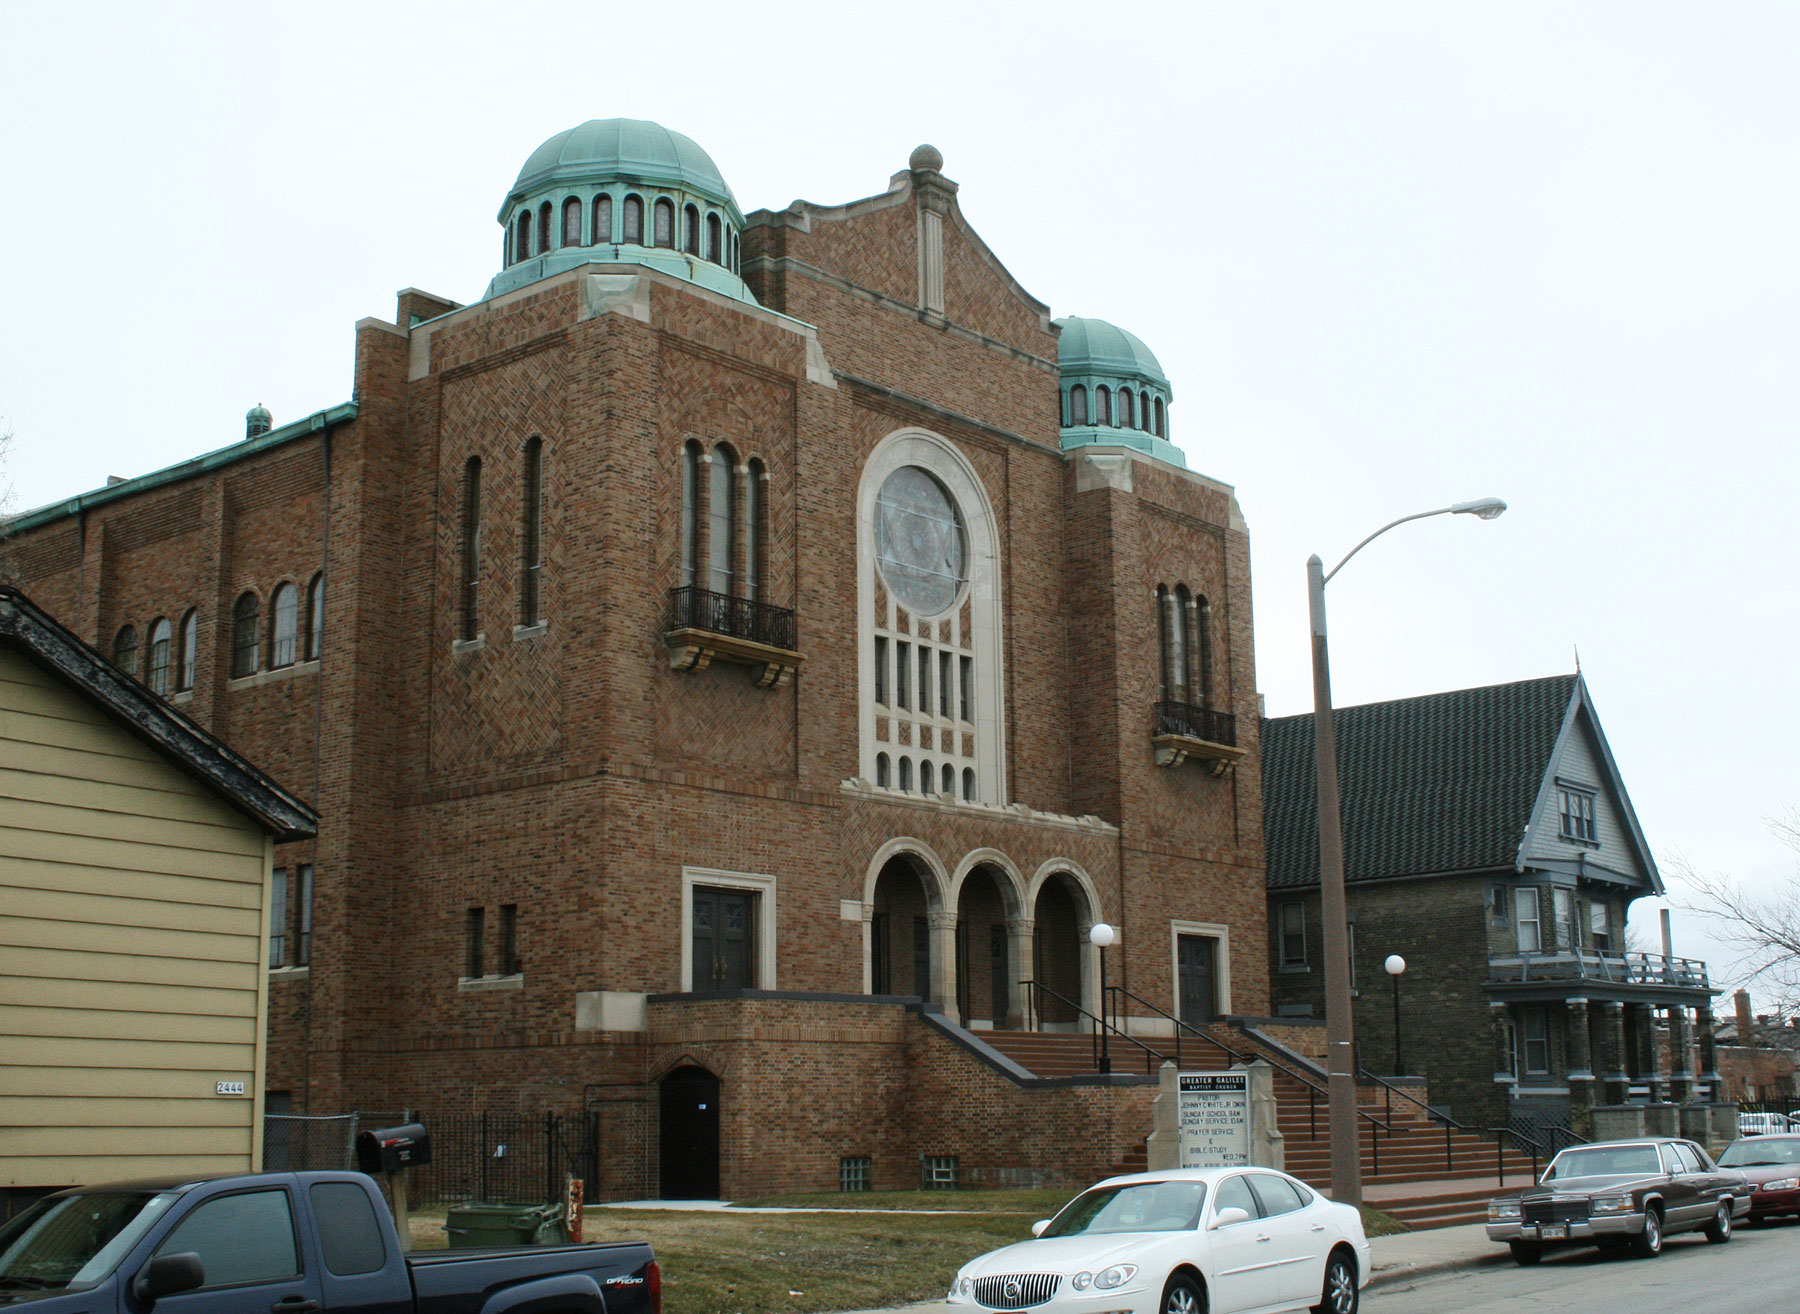 The former house of worship of the Congregation, the home of Greater Galilee Baptist Church since 1960.